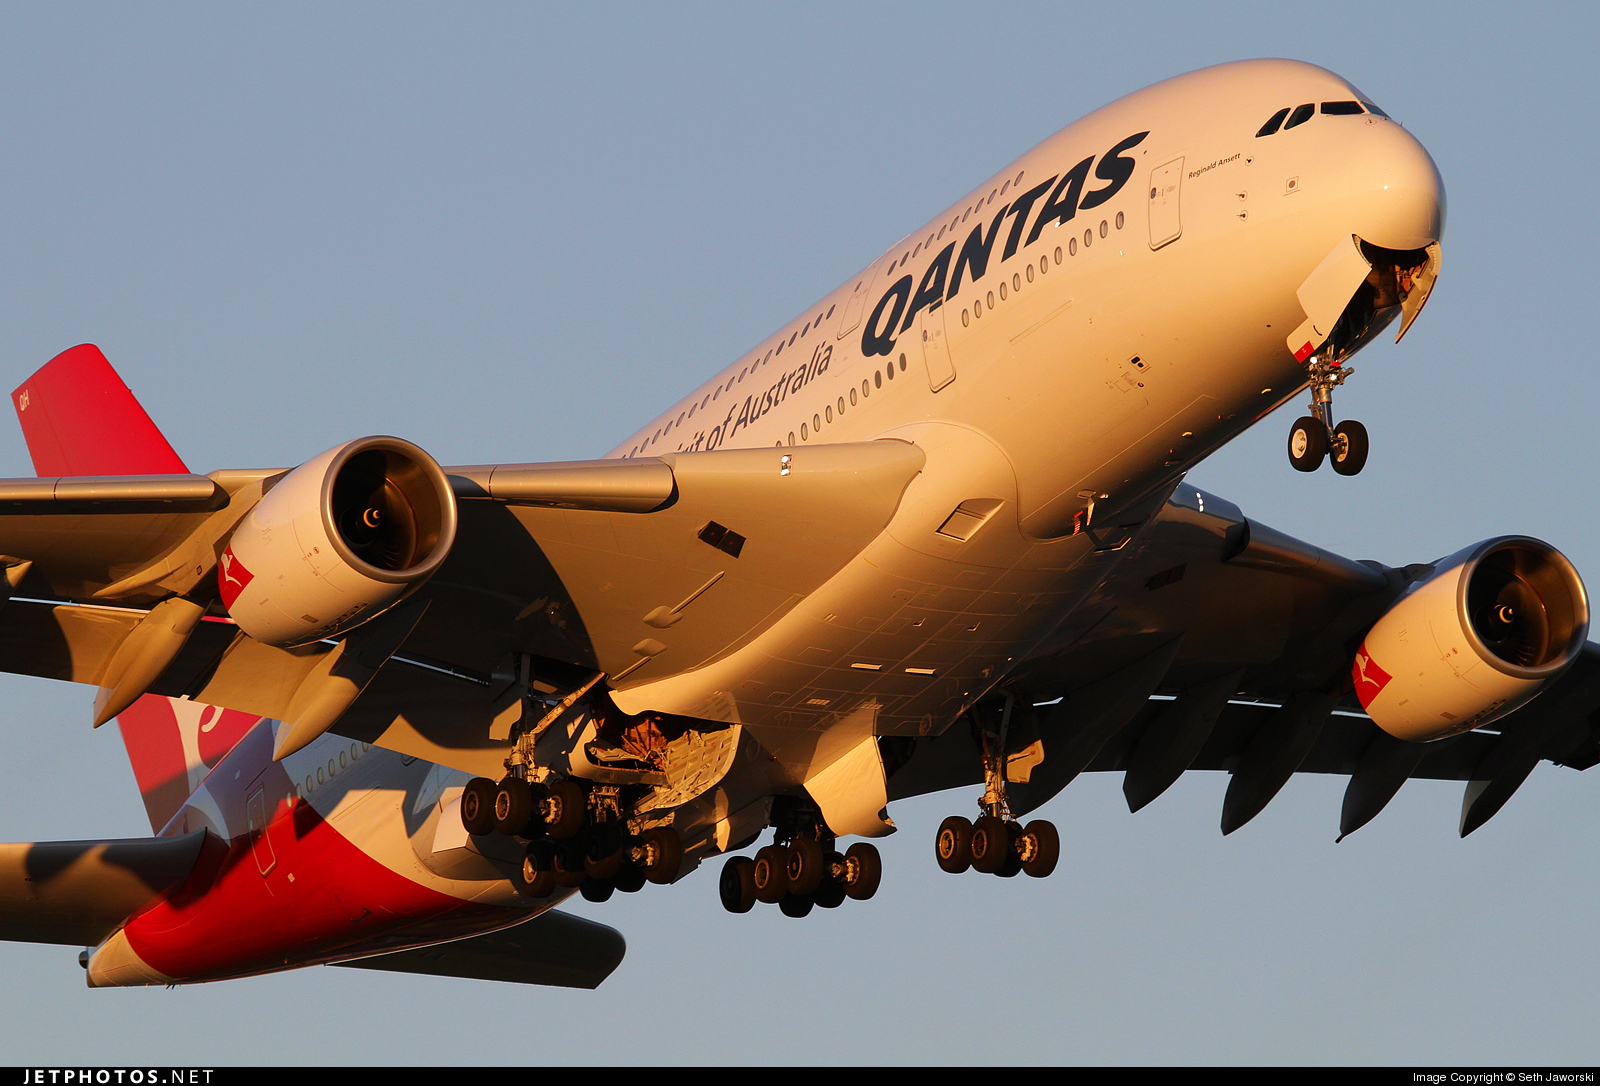 Photo of VH-OQH Airbus A380-842 by Seth Jaworski